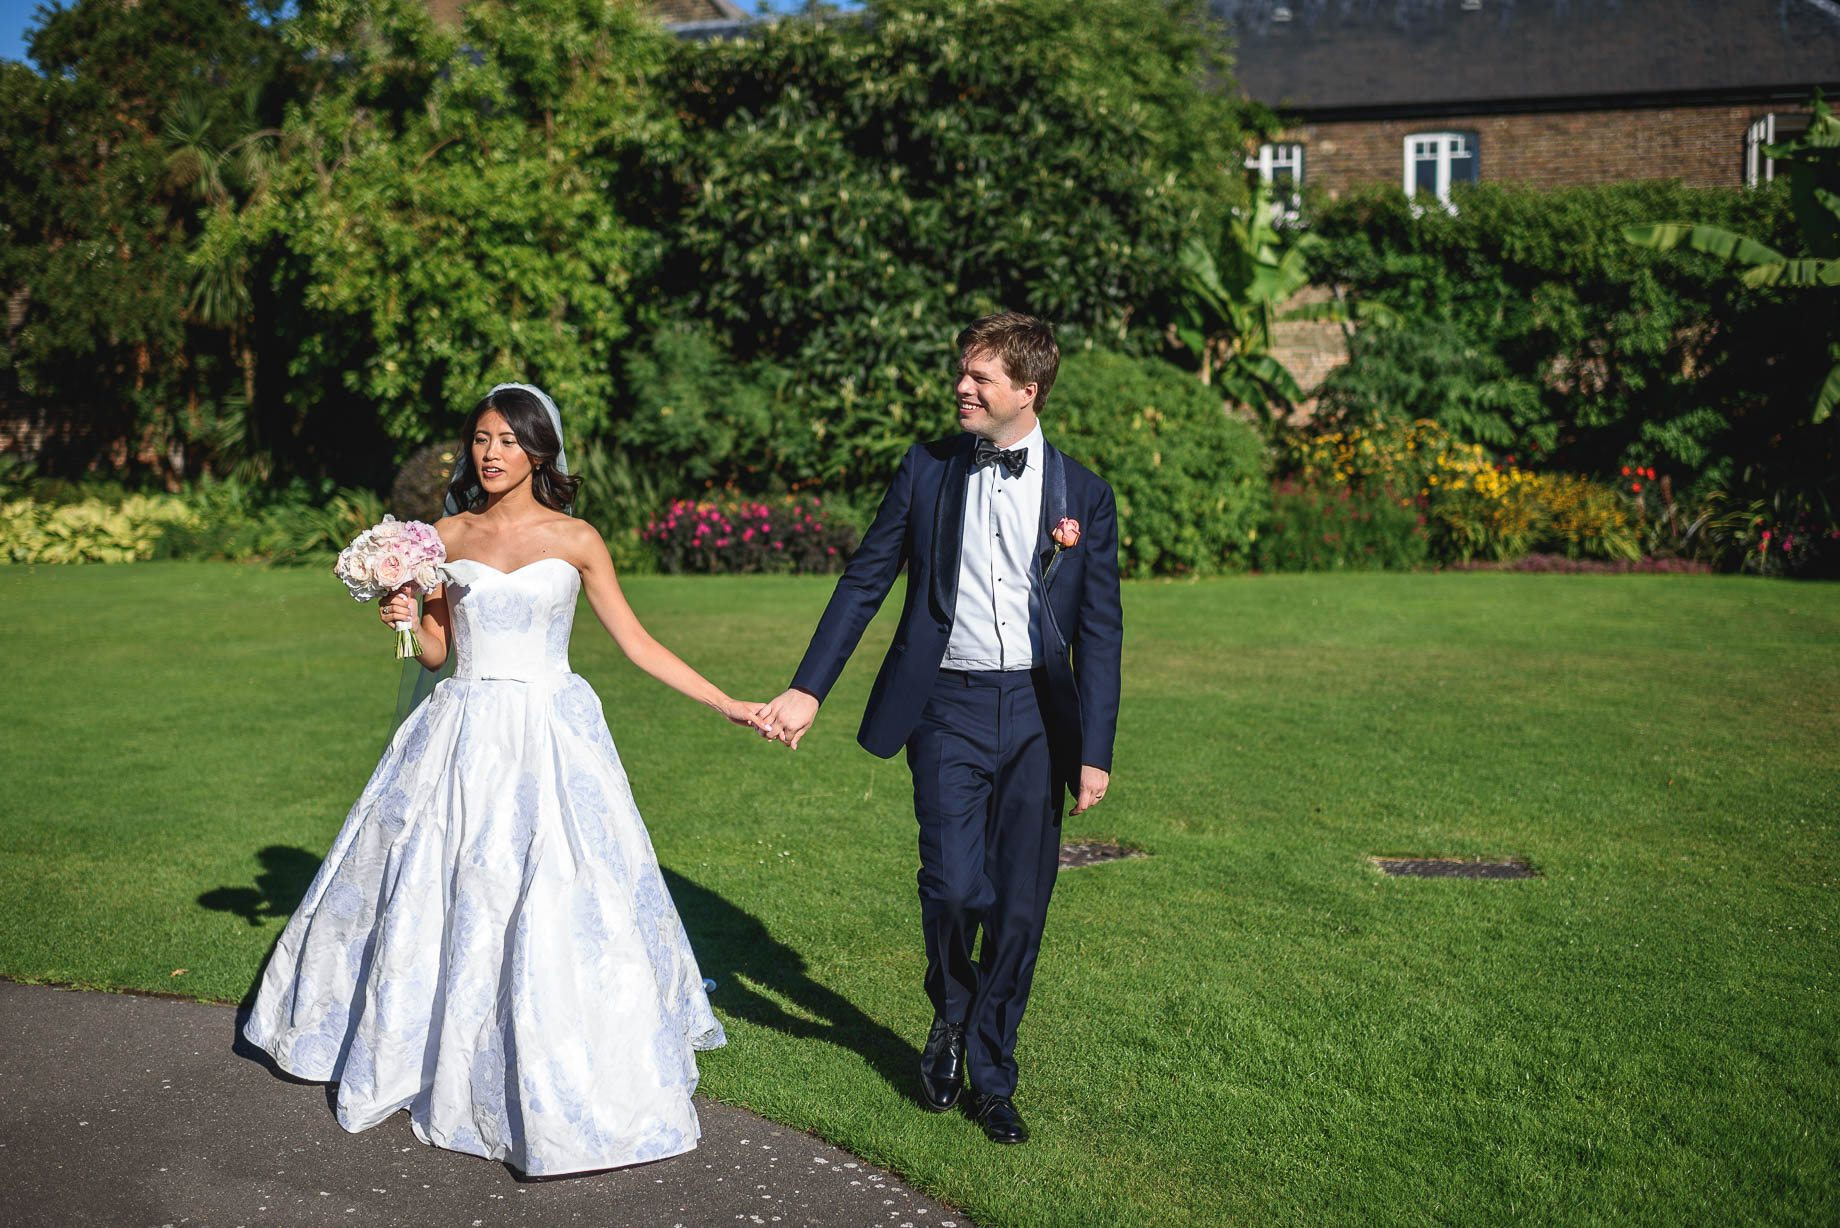 Kew Gardens wedding photography - Guy Collier Photography - Gloria and Frederik (79 of 173)